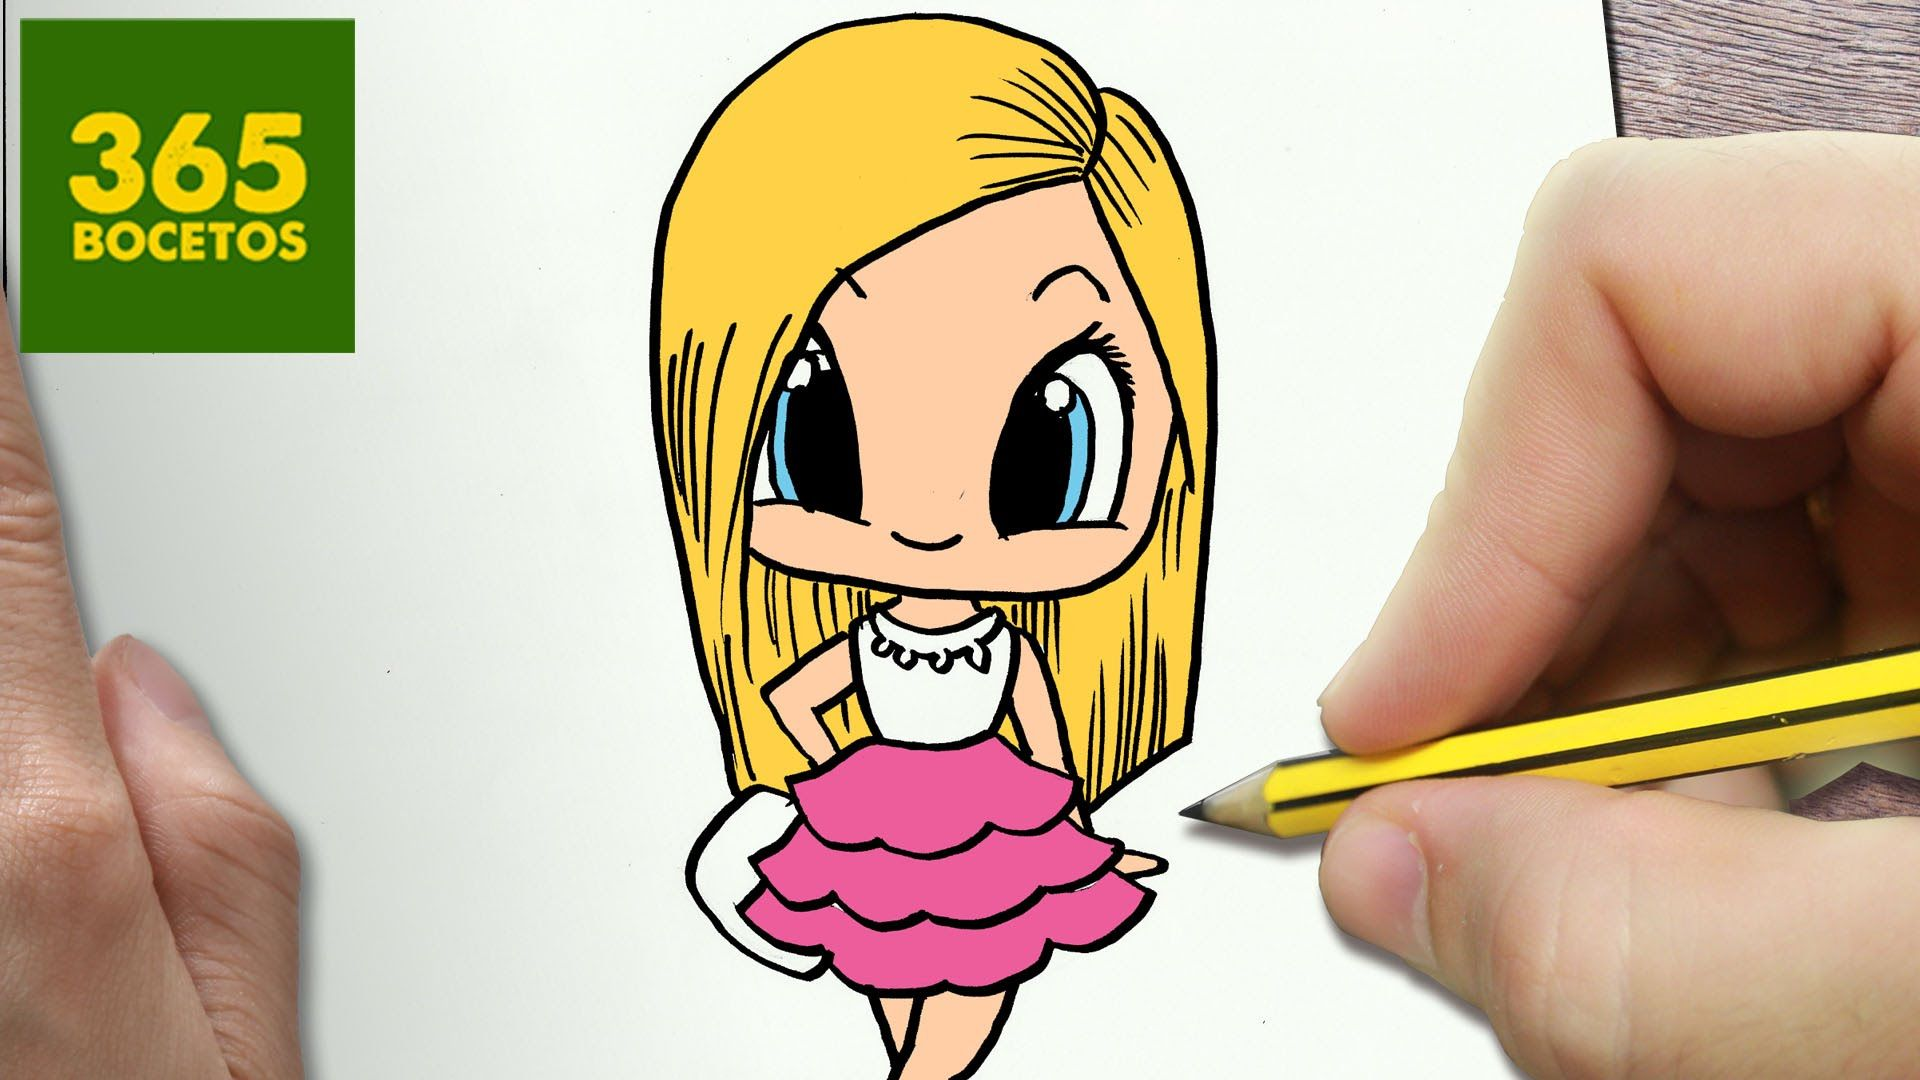 Como Dibujar Barbie Kawaii Paso A Paso Dibujos Kawaii Faciles How To Dibujos Kawaii Faciles Dibujos Kawaii Dibujos Kawaii 365